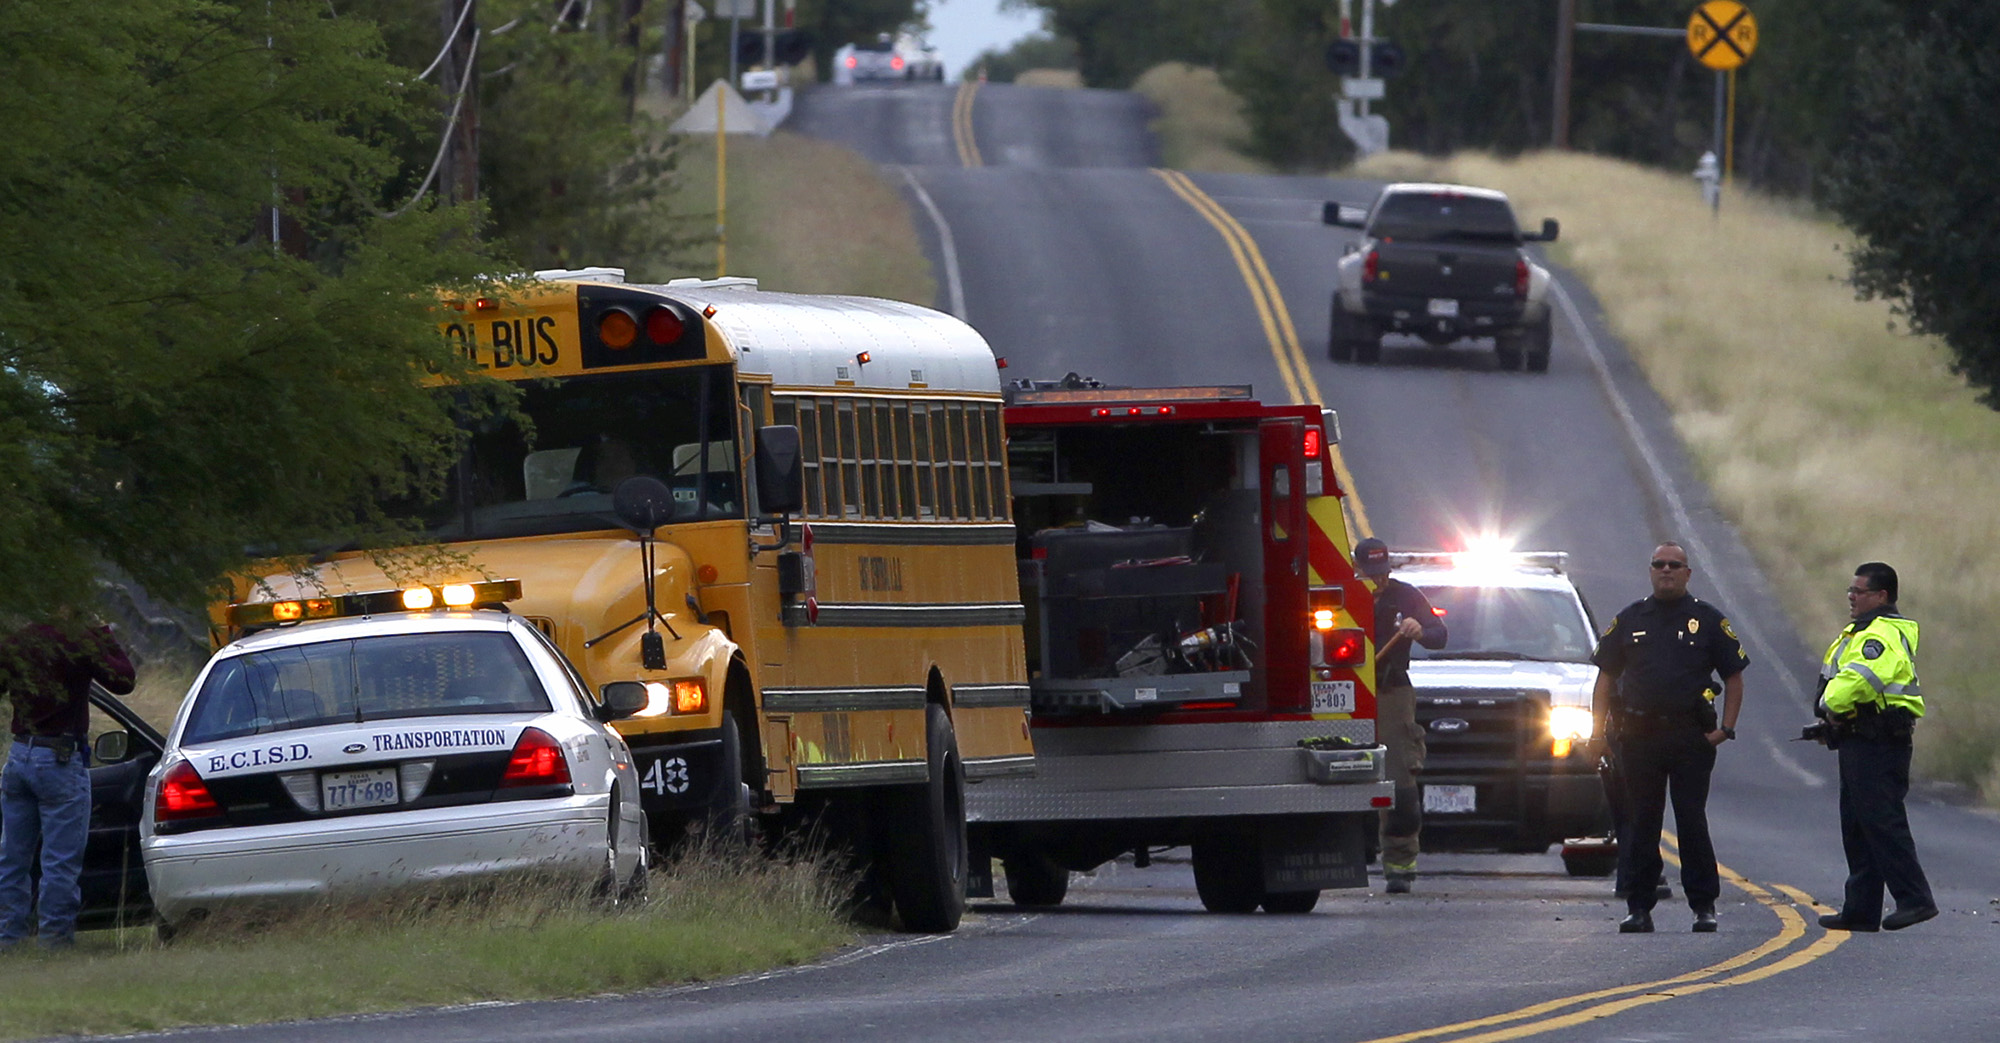 Driver Slams Into School Bus Carrying 18 Children Houston Chronicle